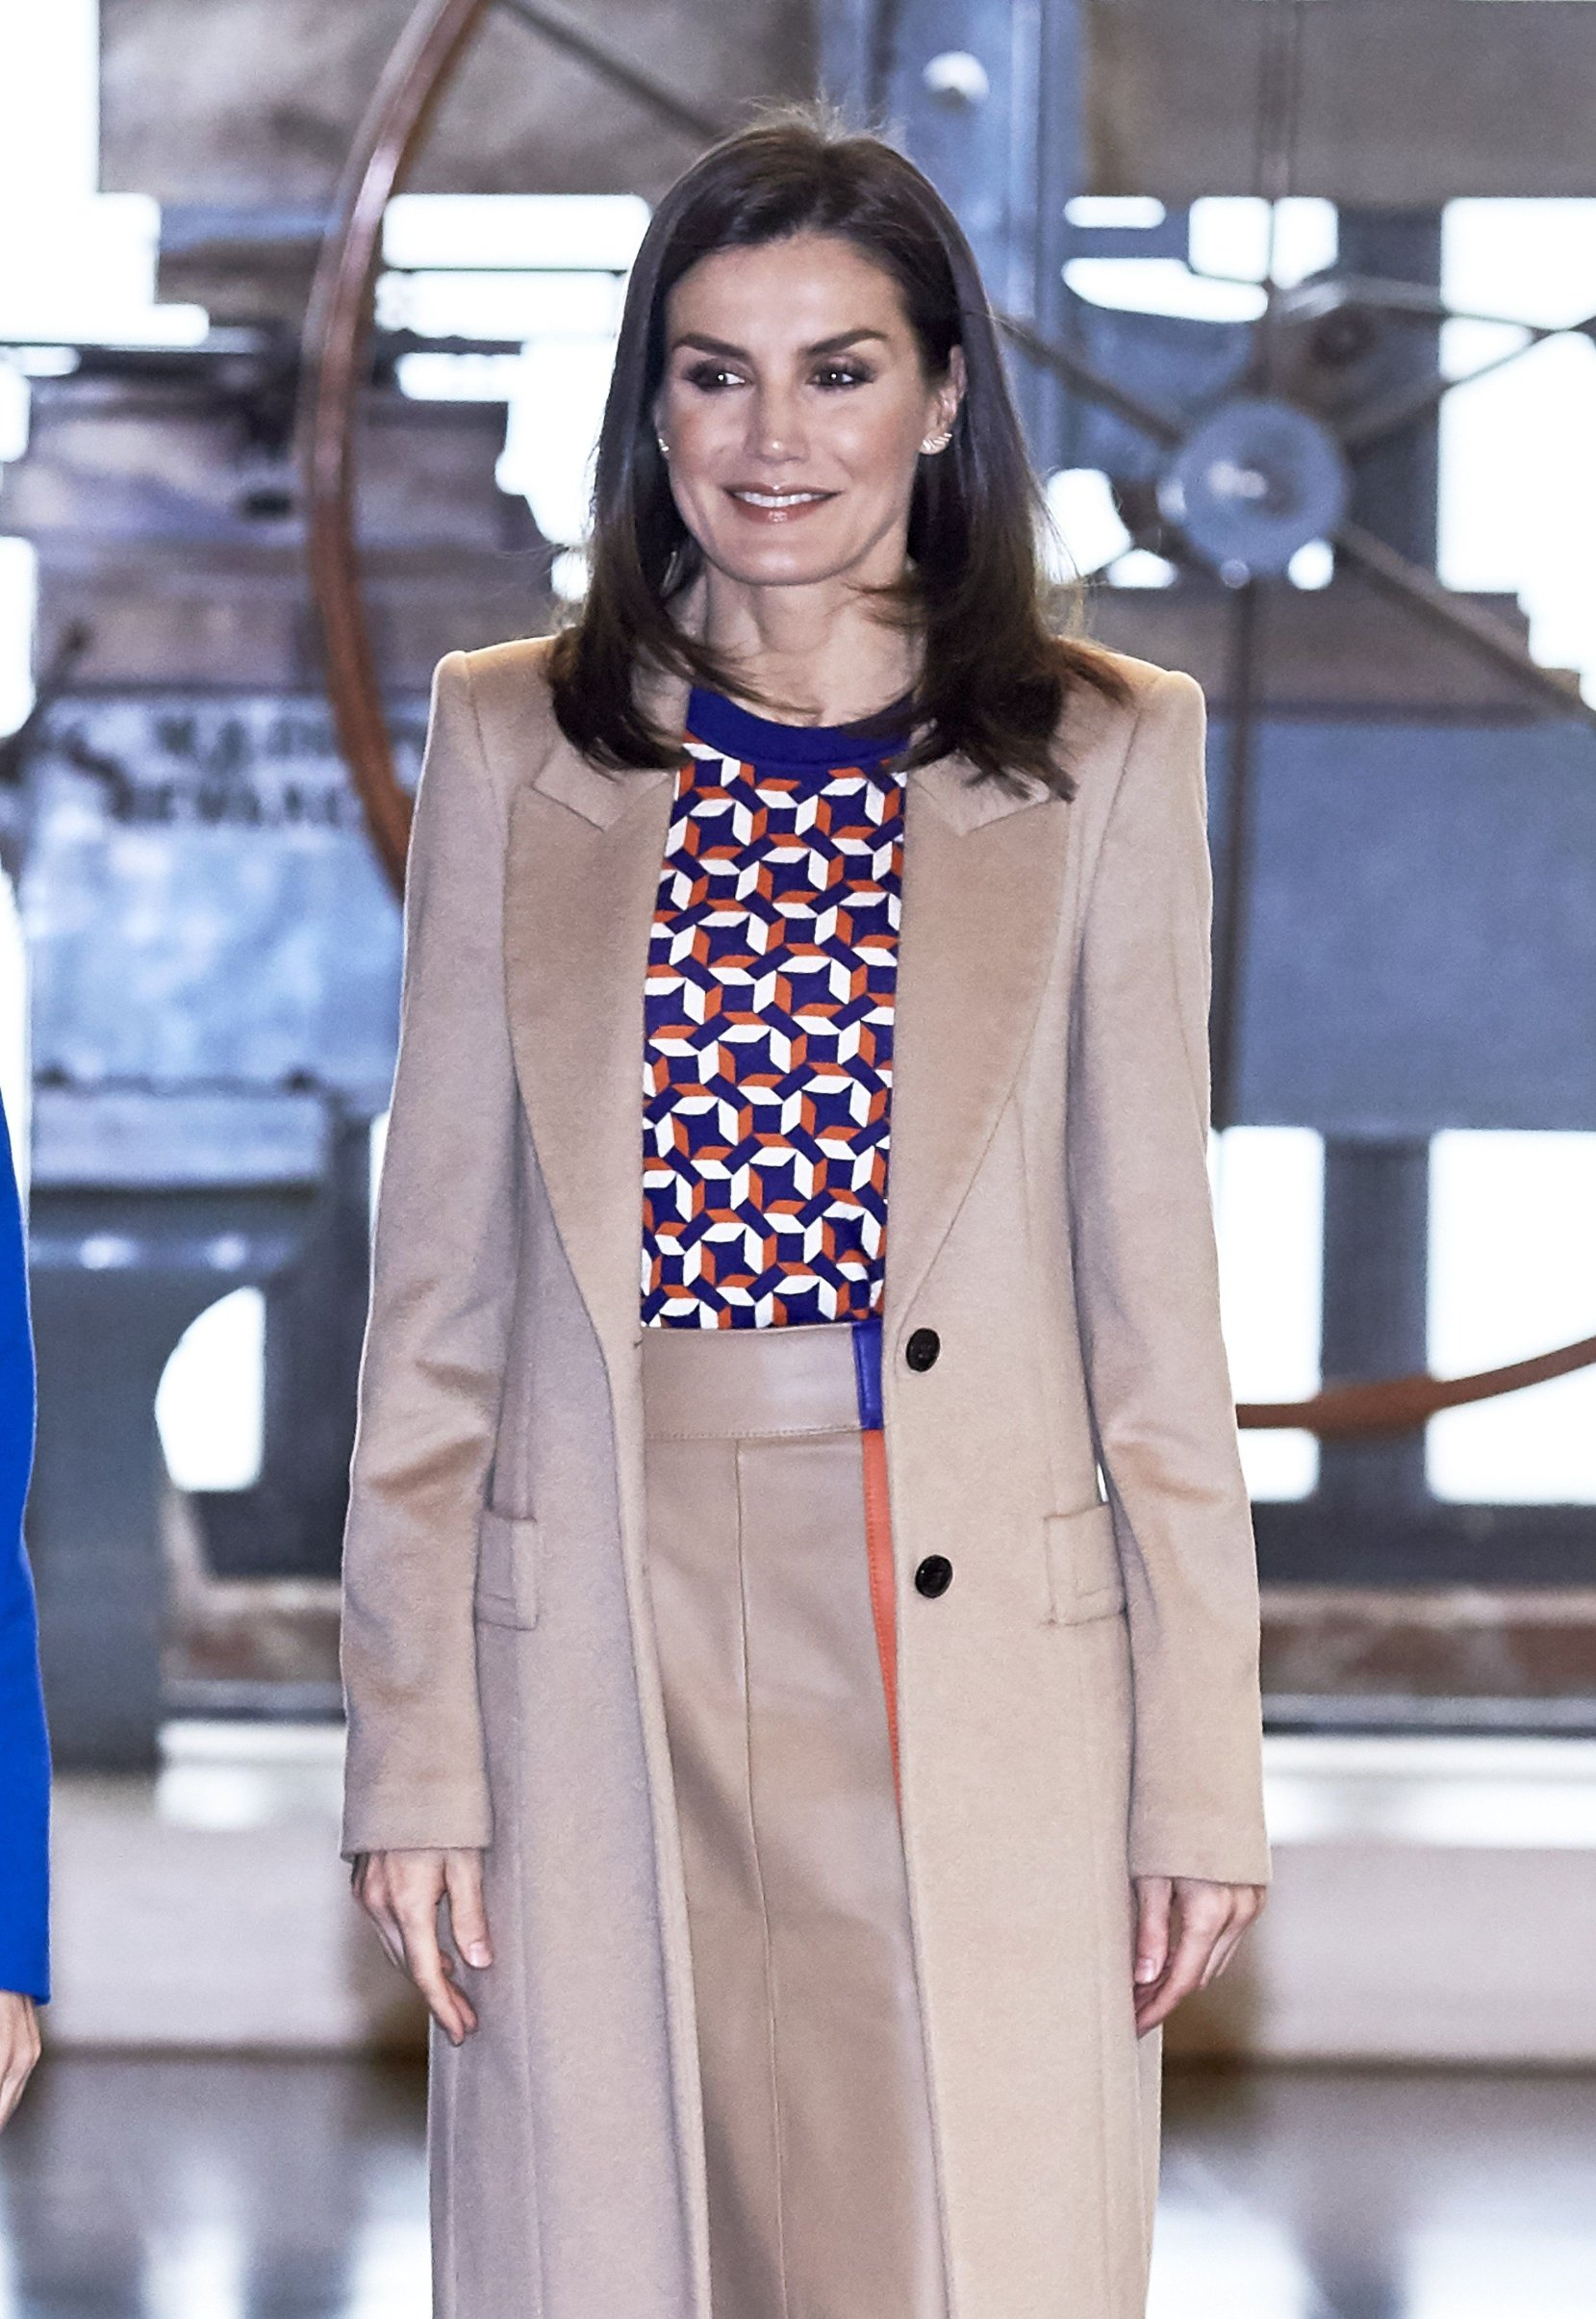 Queen Letizia of Spain visits the School of Engraving and Design of Spain's Mint (Real House of Currency) for graduation diplomas of the 'Tomas Francisco Prieto 2018 Prize' at Real Casa de la Moneda in Madrid April 08, 2019. (Spain)//CORDOBANAVALPOTRO_cordoba012817/1904081524/Credit:Miguel Cordoba/SIPA/1904081527, Image: 425106783, License: Rights-managed, Restrictions: , Model Release: no, Credit line: Profimedia, TEMP Sipa Press